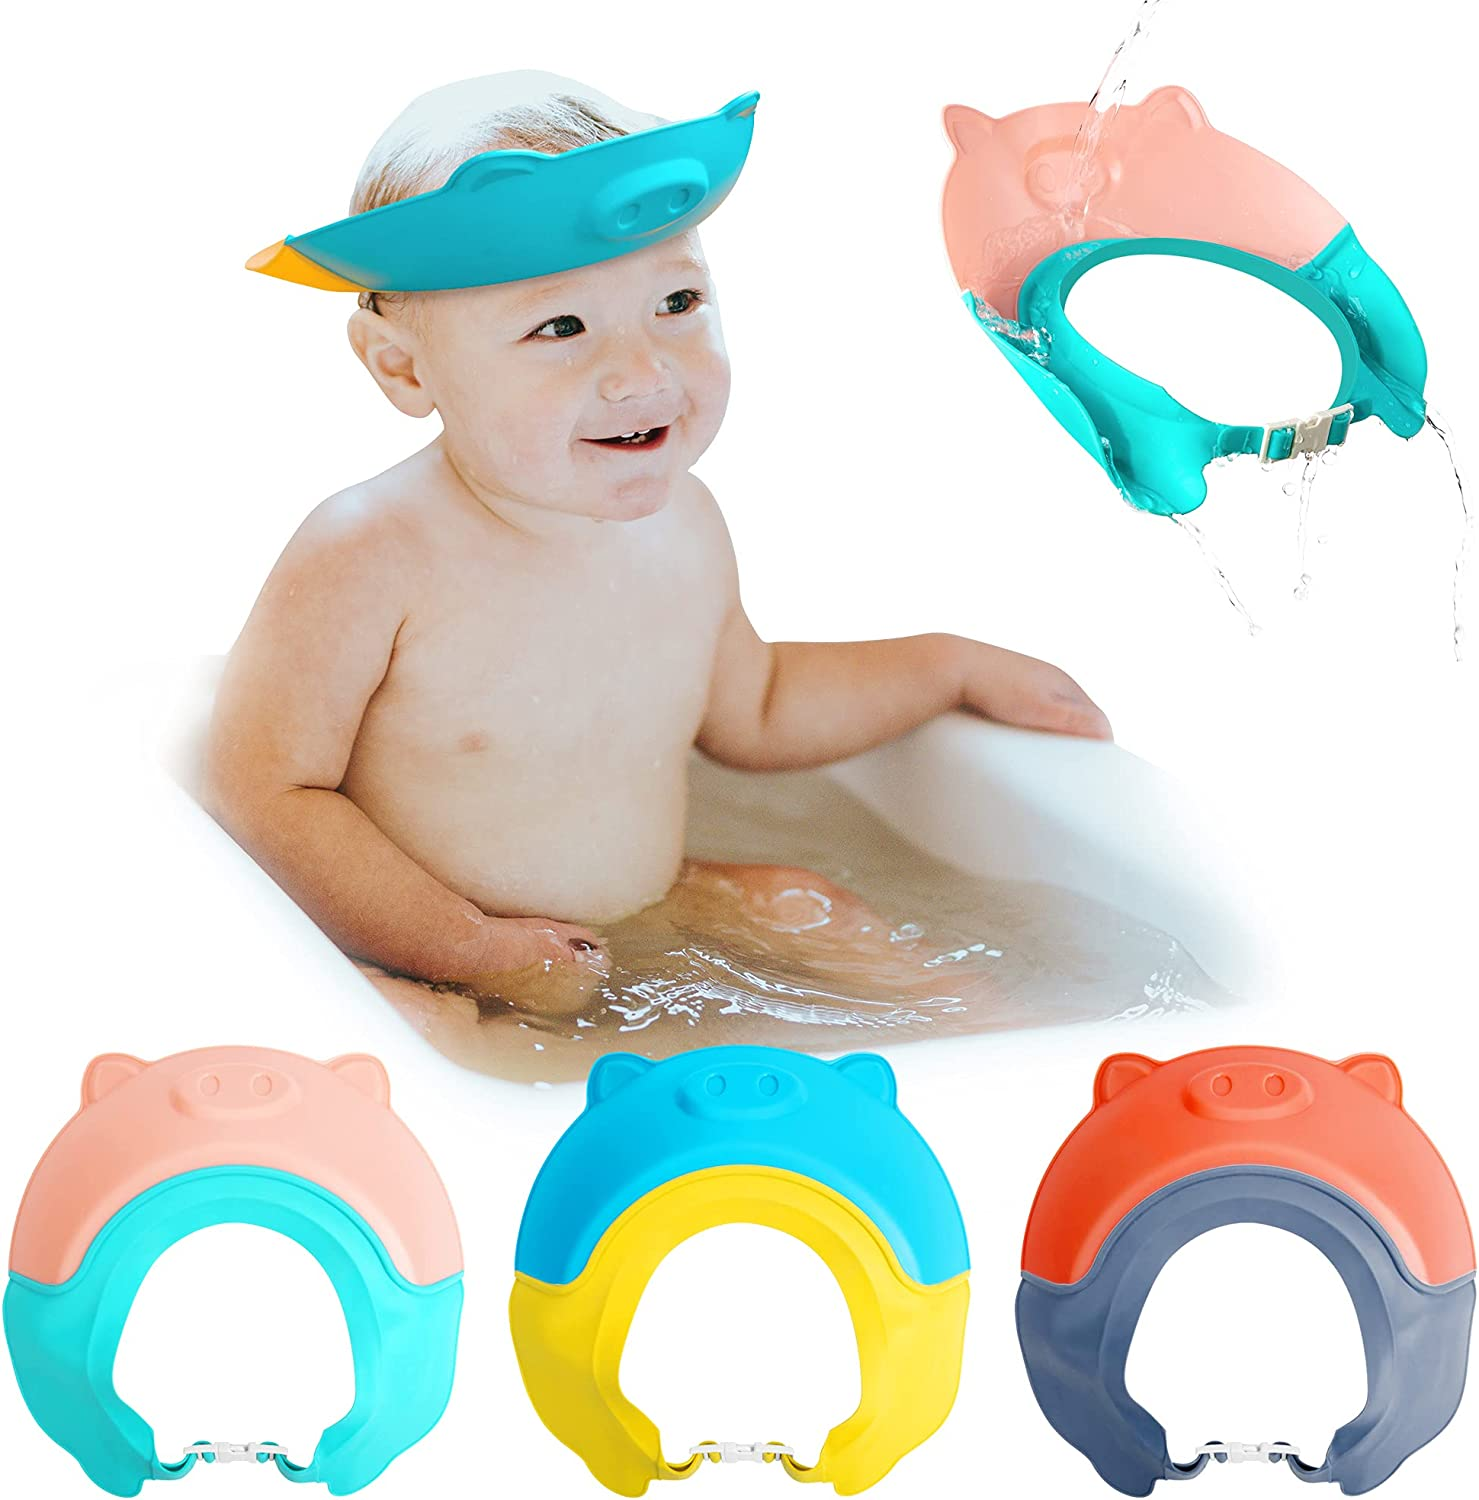 codree 3Pcs Baby Shower Cap Protection Bath Cap,Baby Shampoo Cap,Soft Adjustable Visor Hat,Washing Hair Cap Protects Baby's Face and Ears from Water for Toddlers,Baby,Kids,Children(Cartoon Pig)